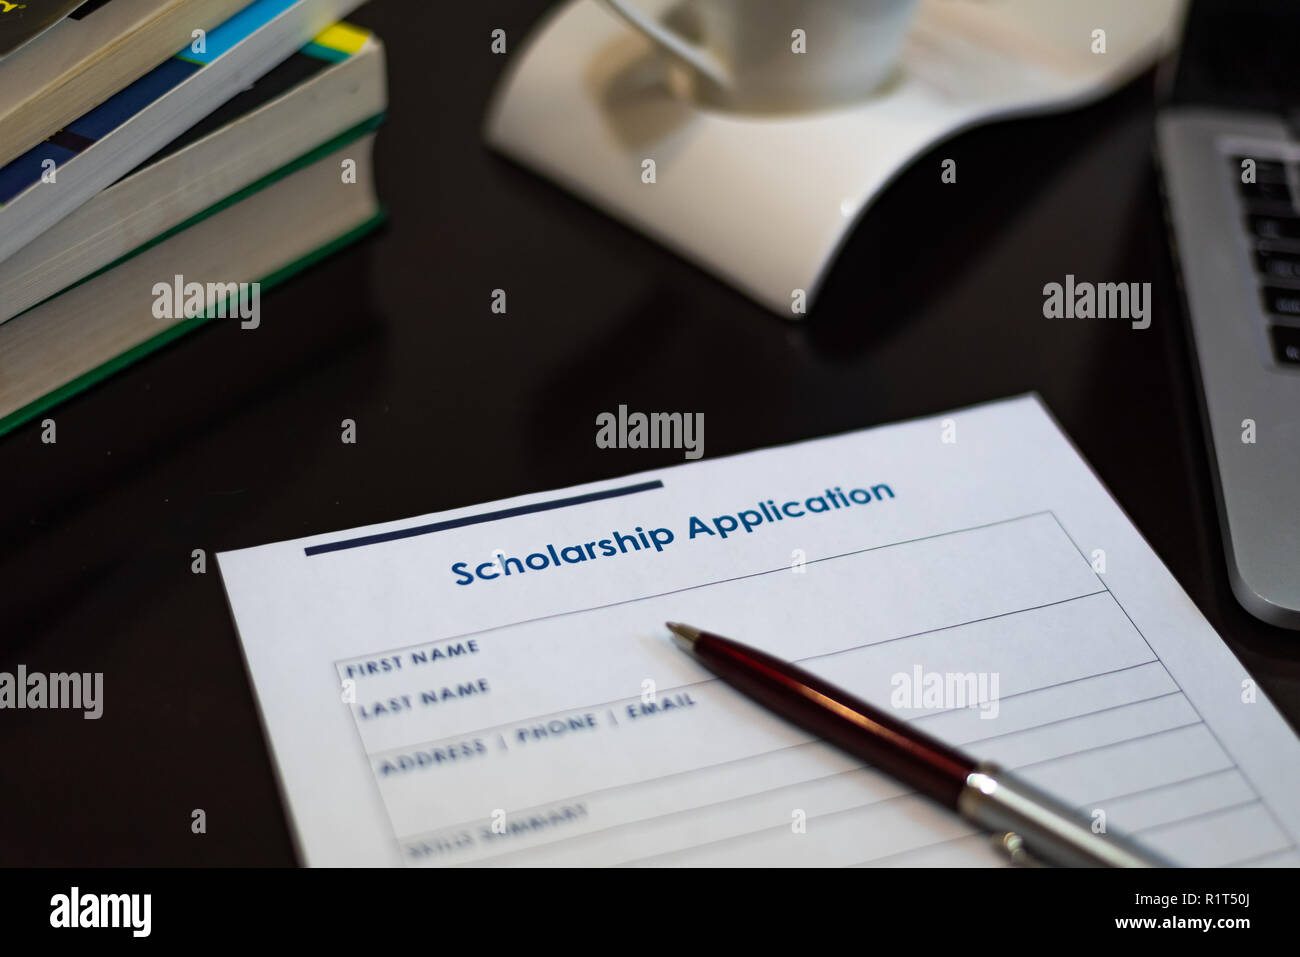 Scholarship application form for student graduate university college education funding - Stock Image